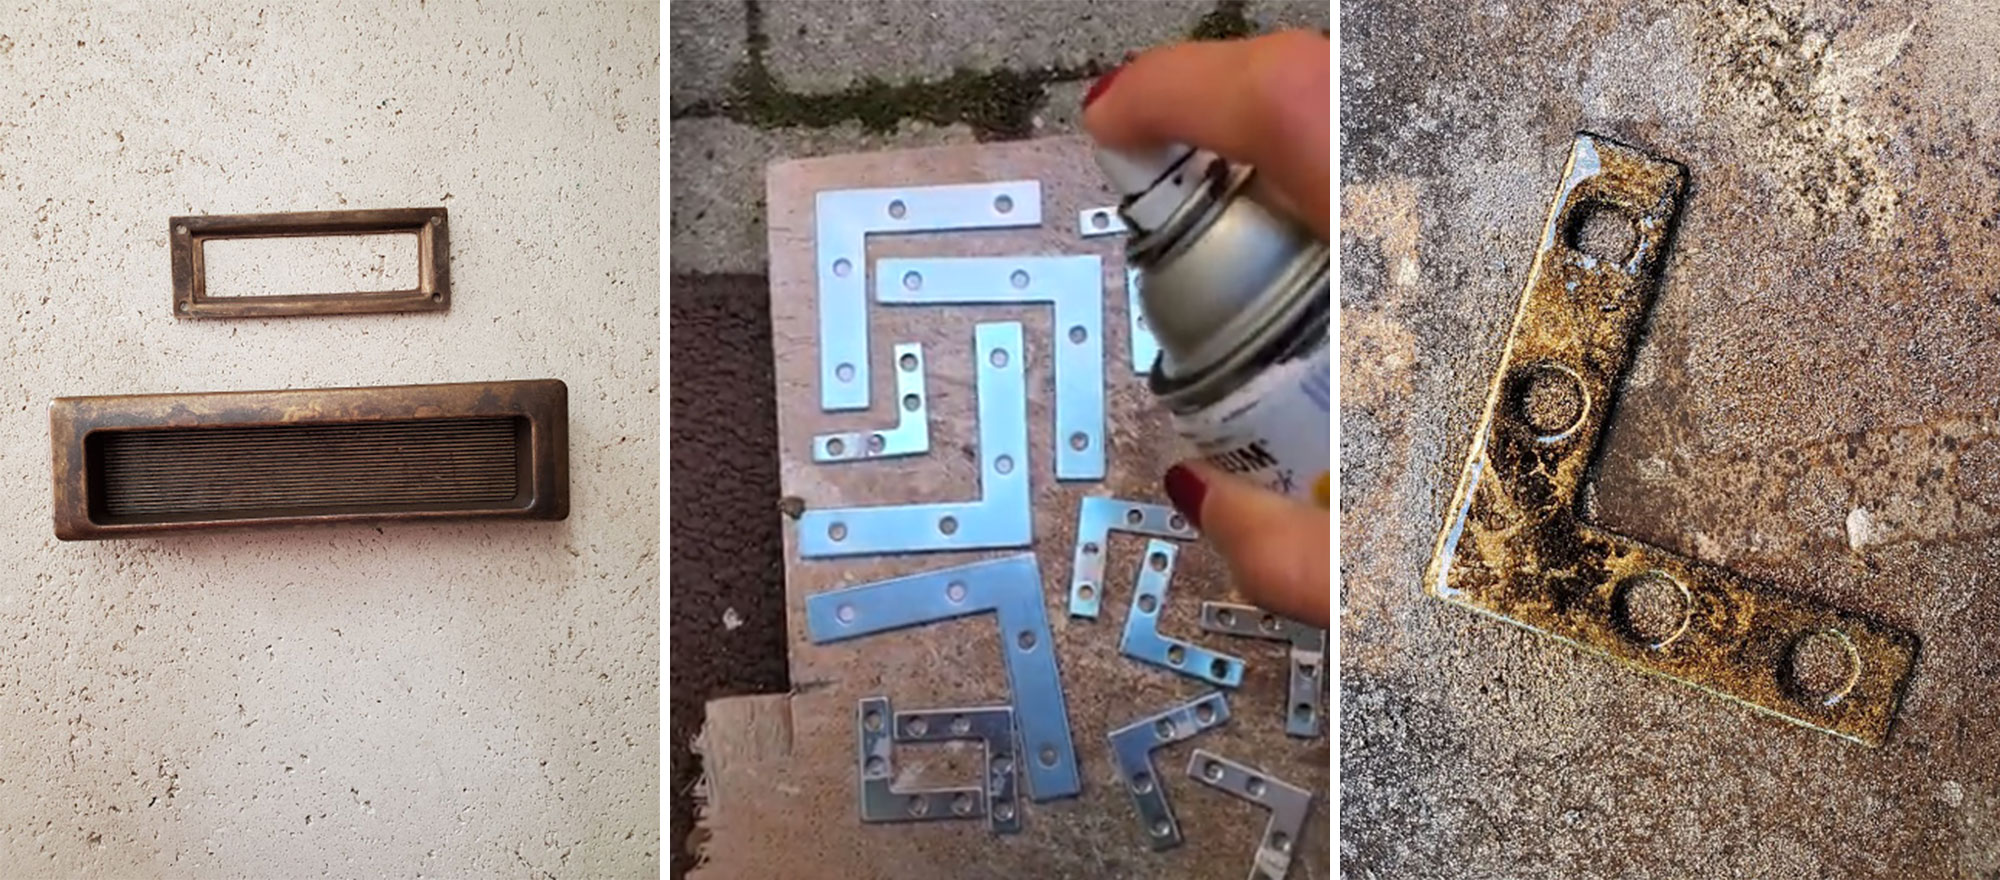 Image left: The new hardware for the dresser. Image middle: Spray painting the silver brackets. Image right: Spray painted bracket.